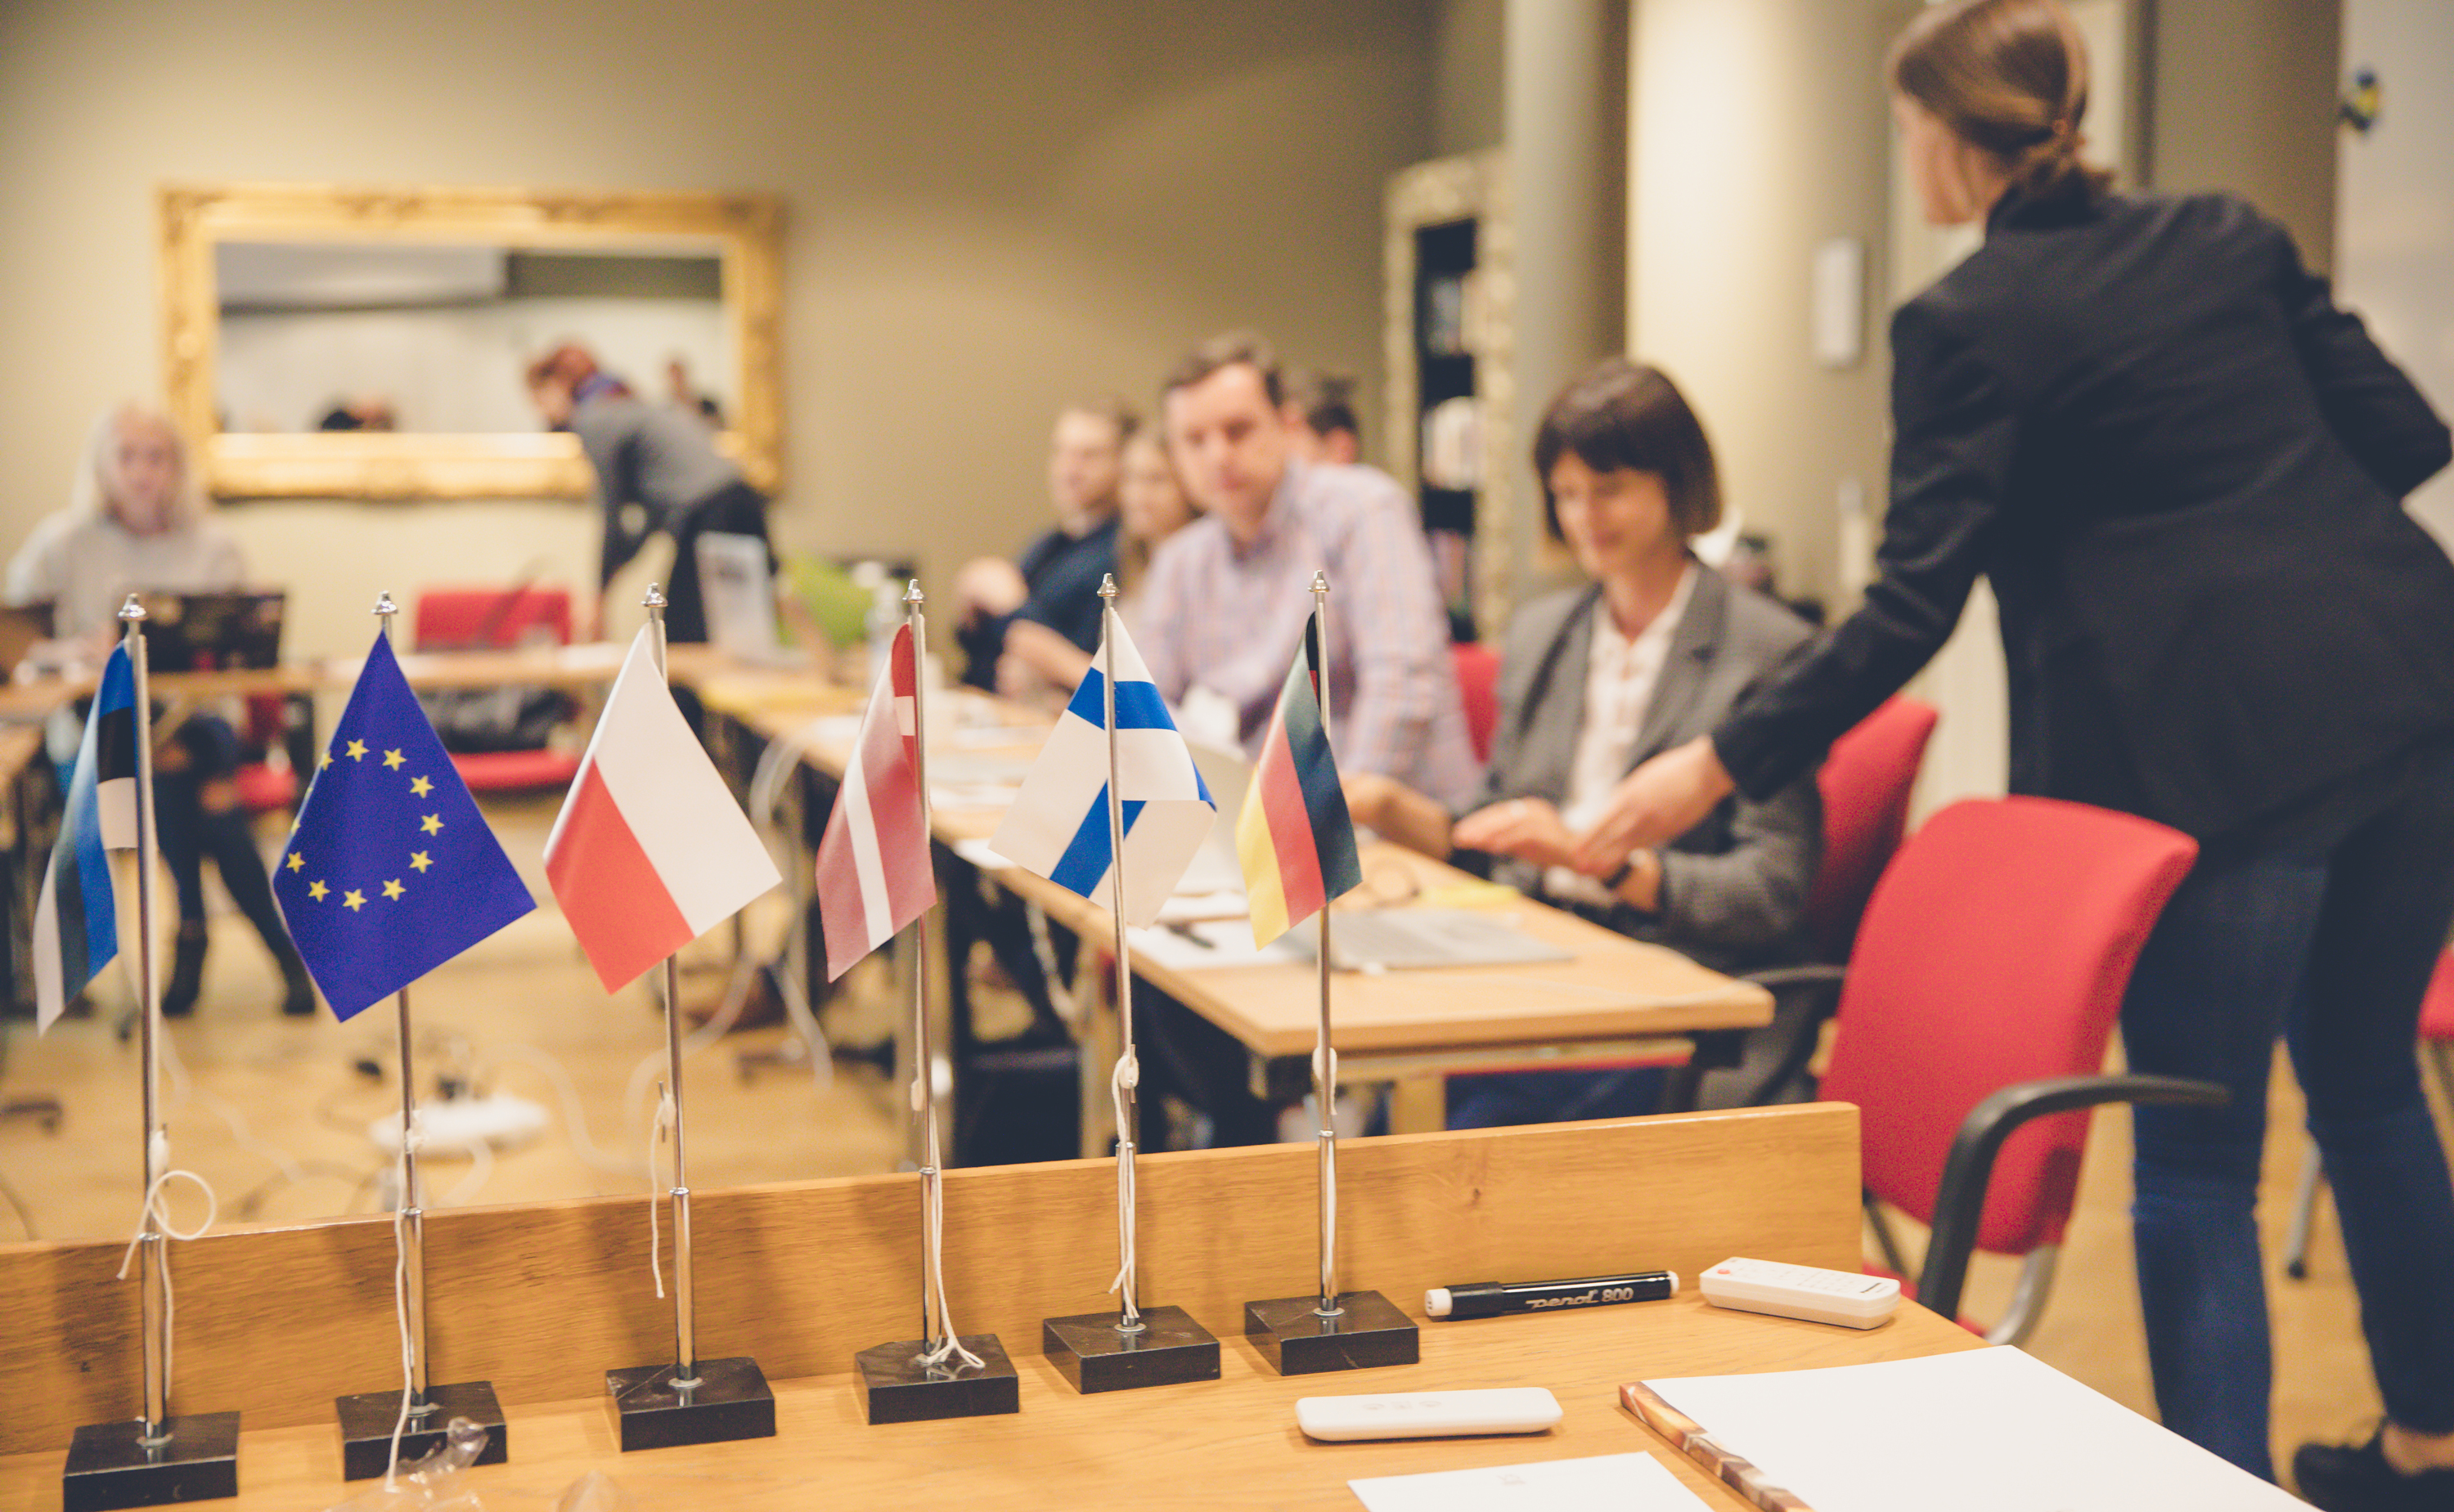 People in conference room with flags